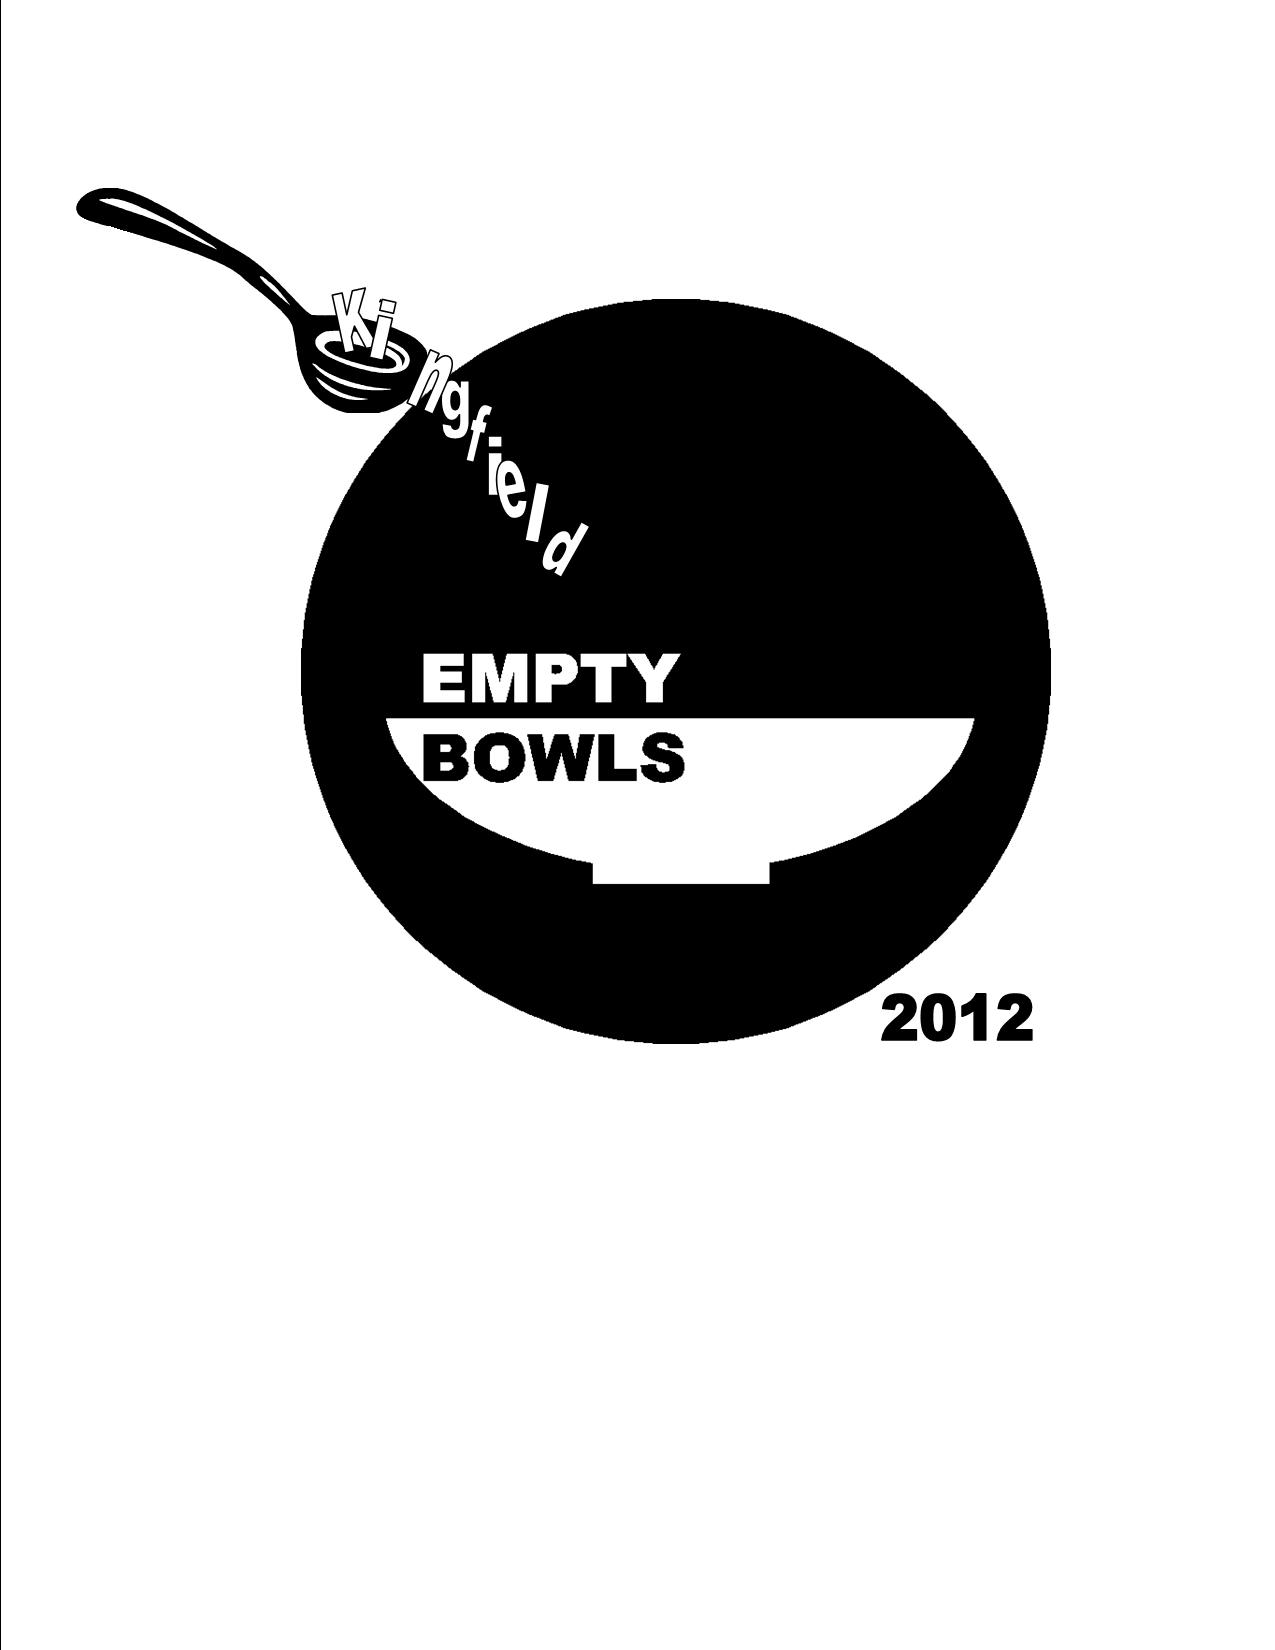 2nd Annual Kingfield Empty Bowls Event